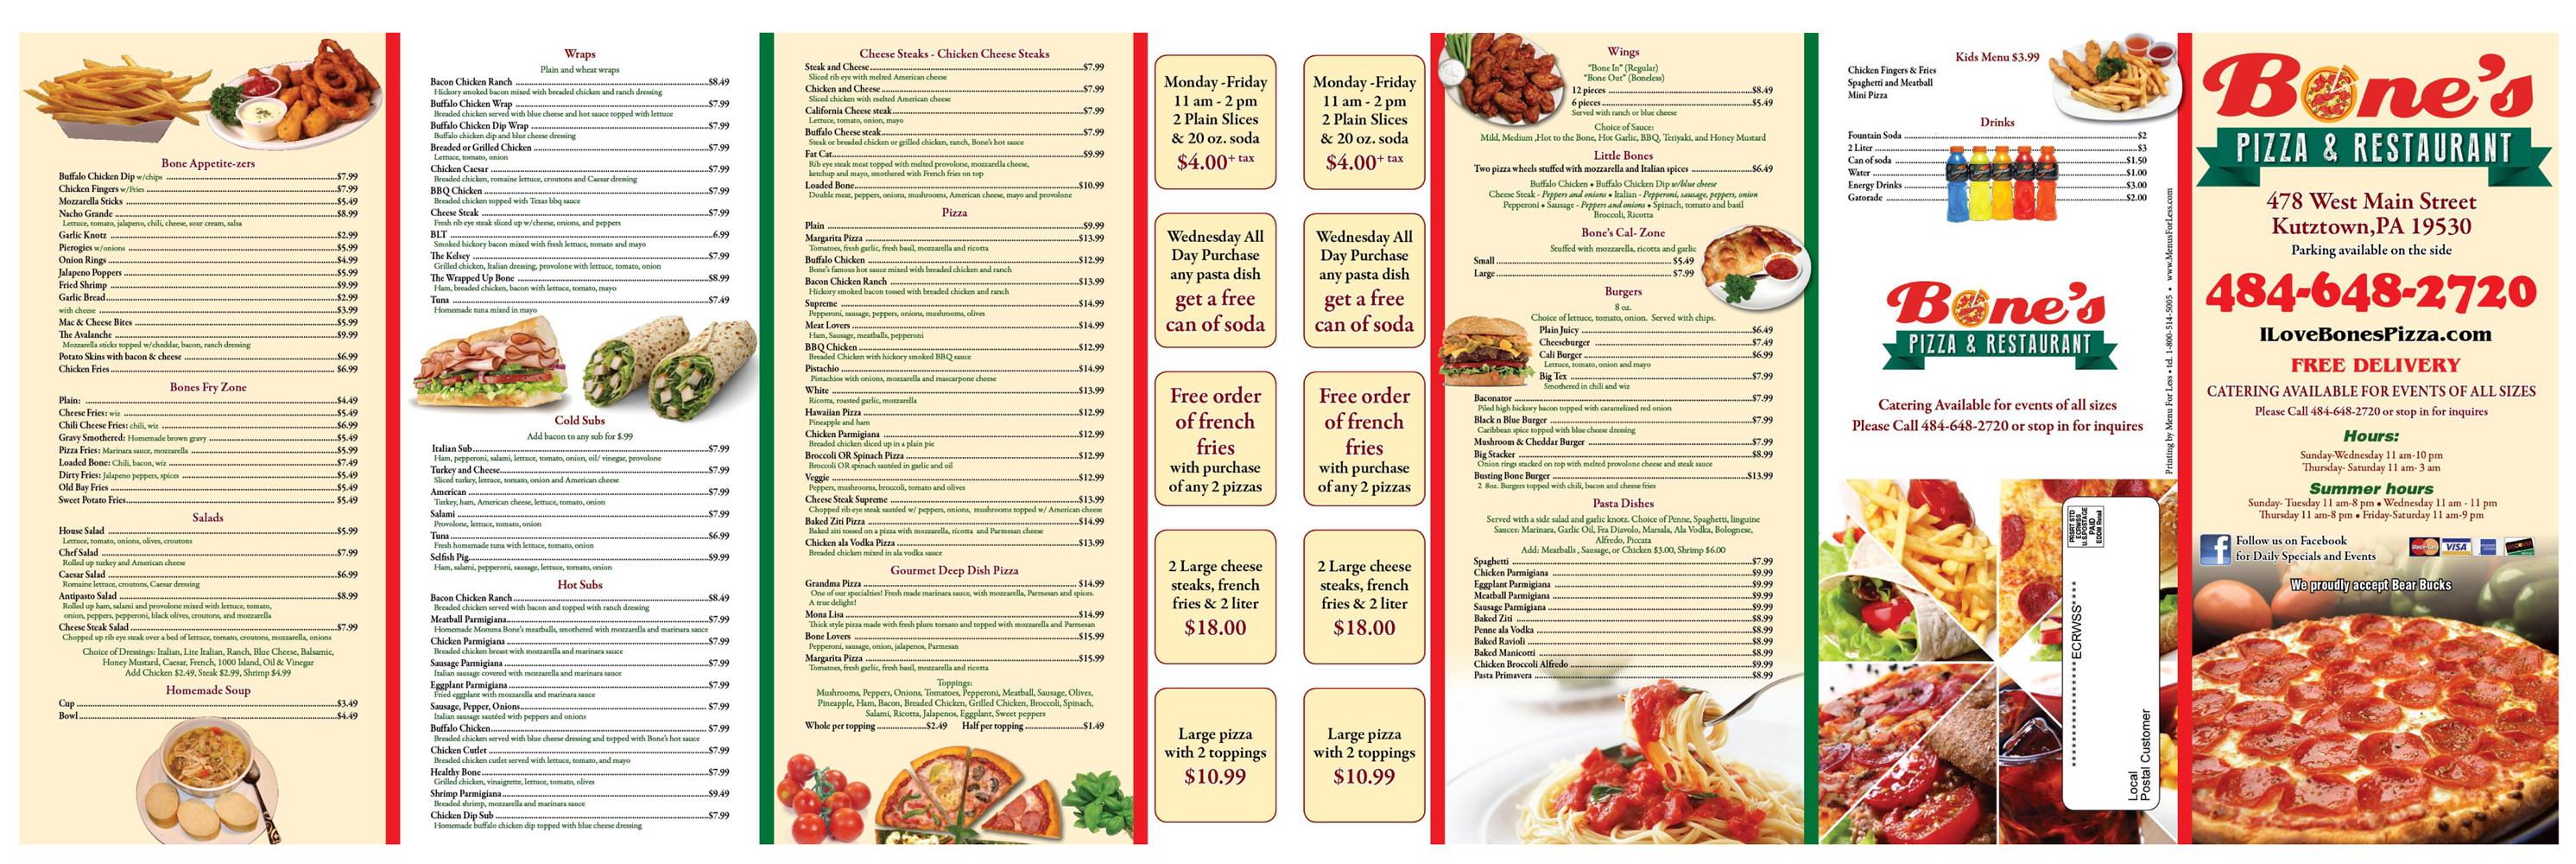 Bone's Pizza Menu